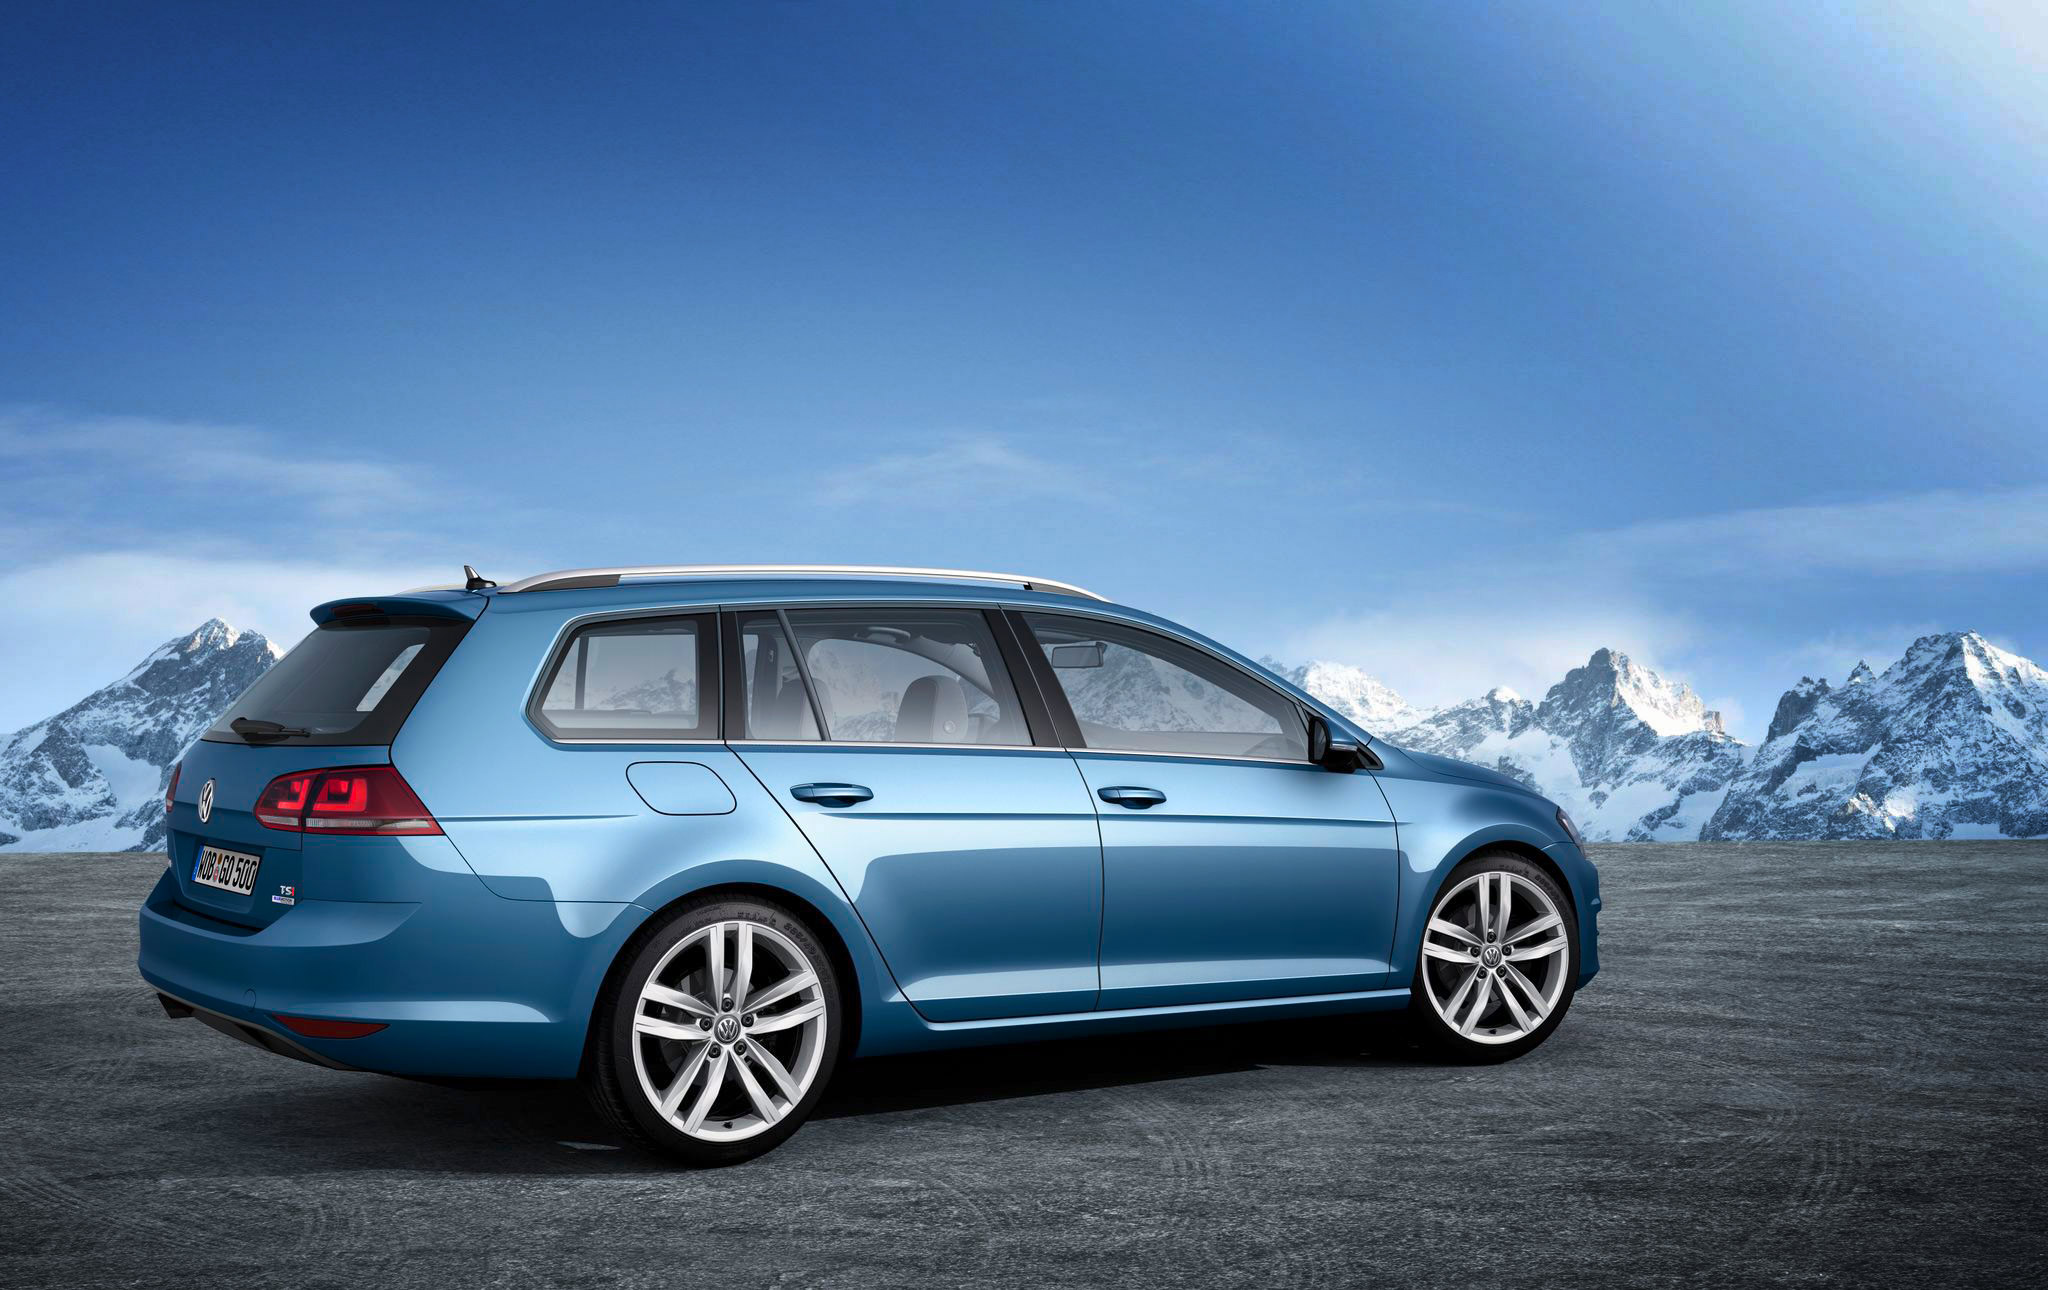 volkswagen-golf-wagon-001